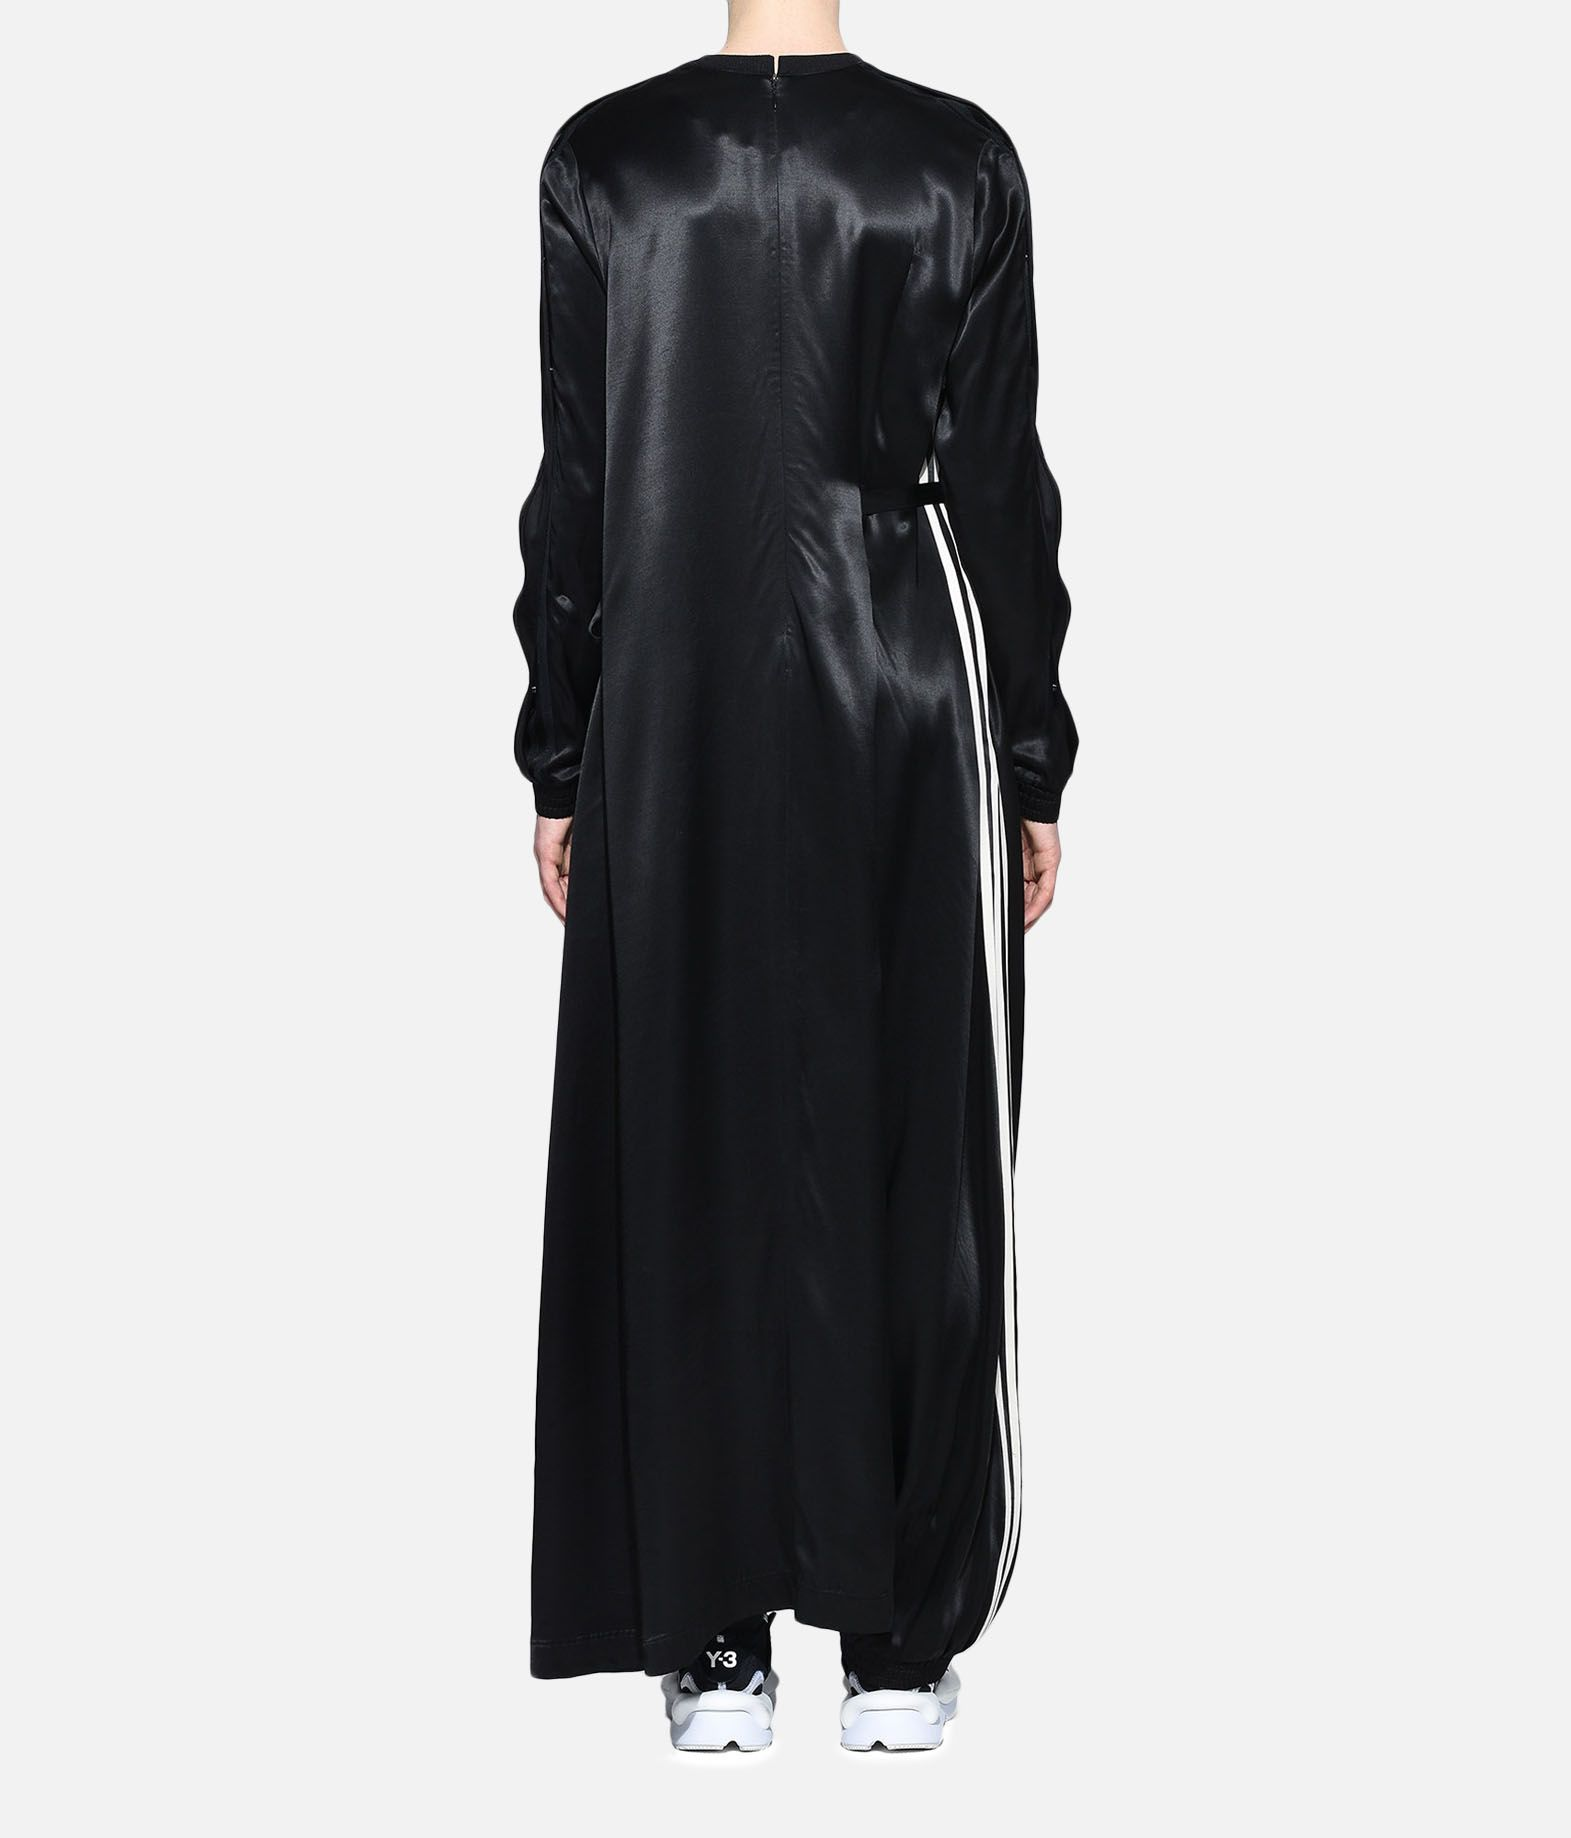 Y-3 Y-3 3-Stripes Lux Track Dress Long dress Woman d